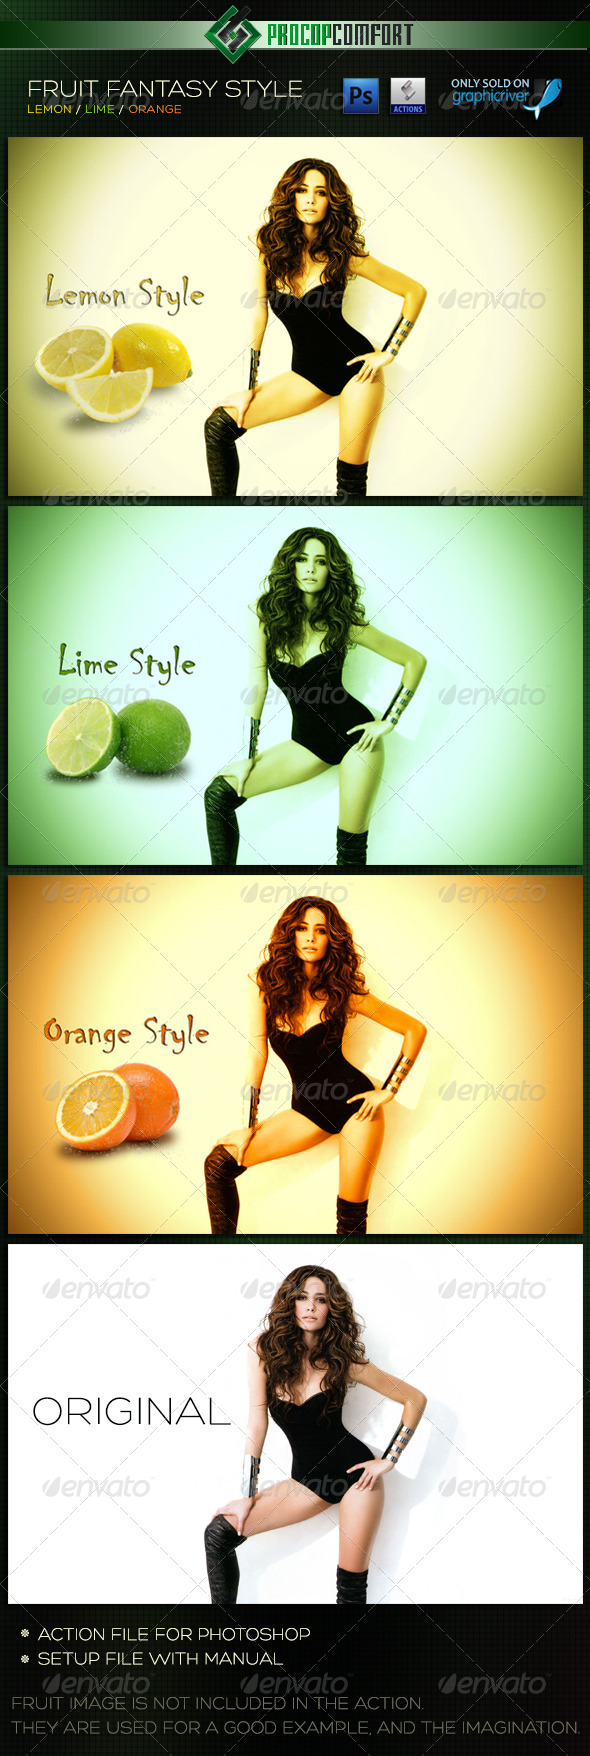 GraphicRiver Fruit Fantasy Styles Lemon Lime Orange 6030077